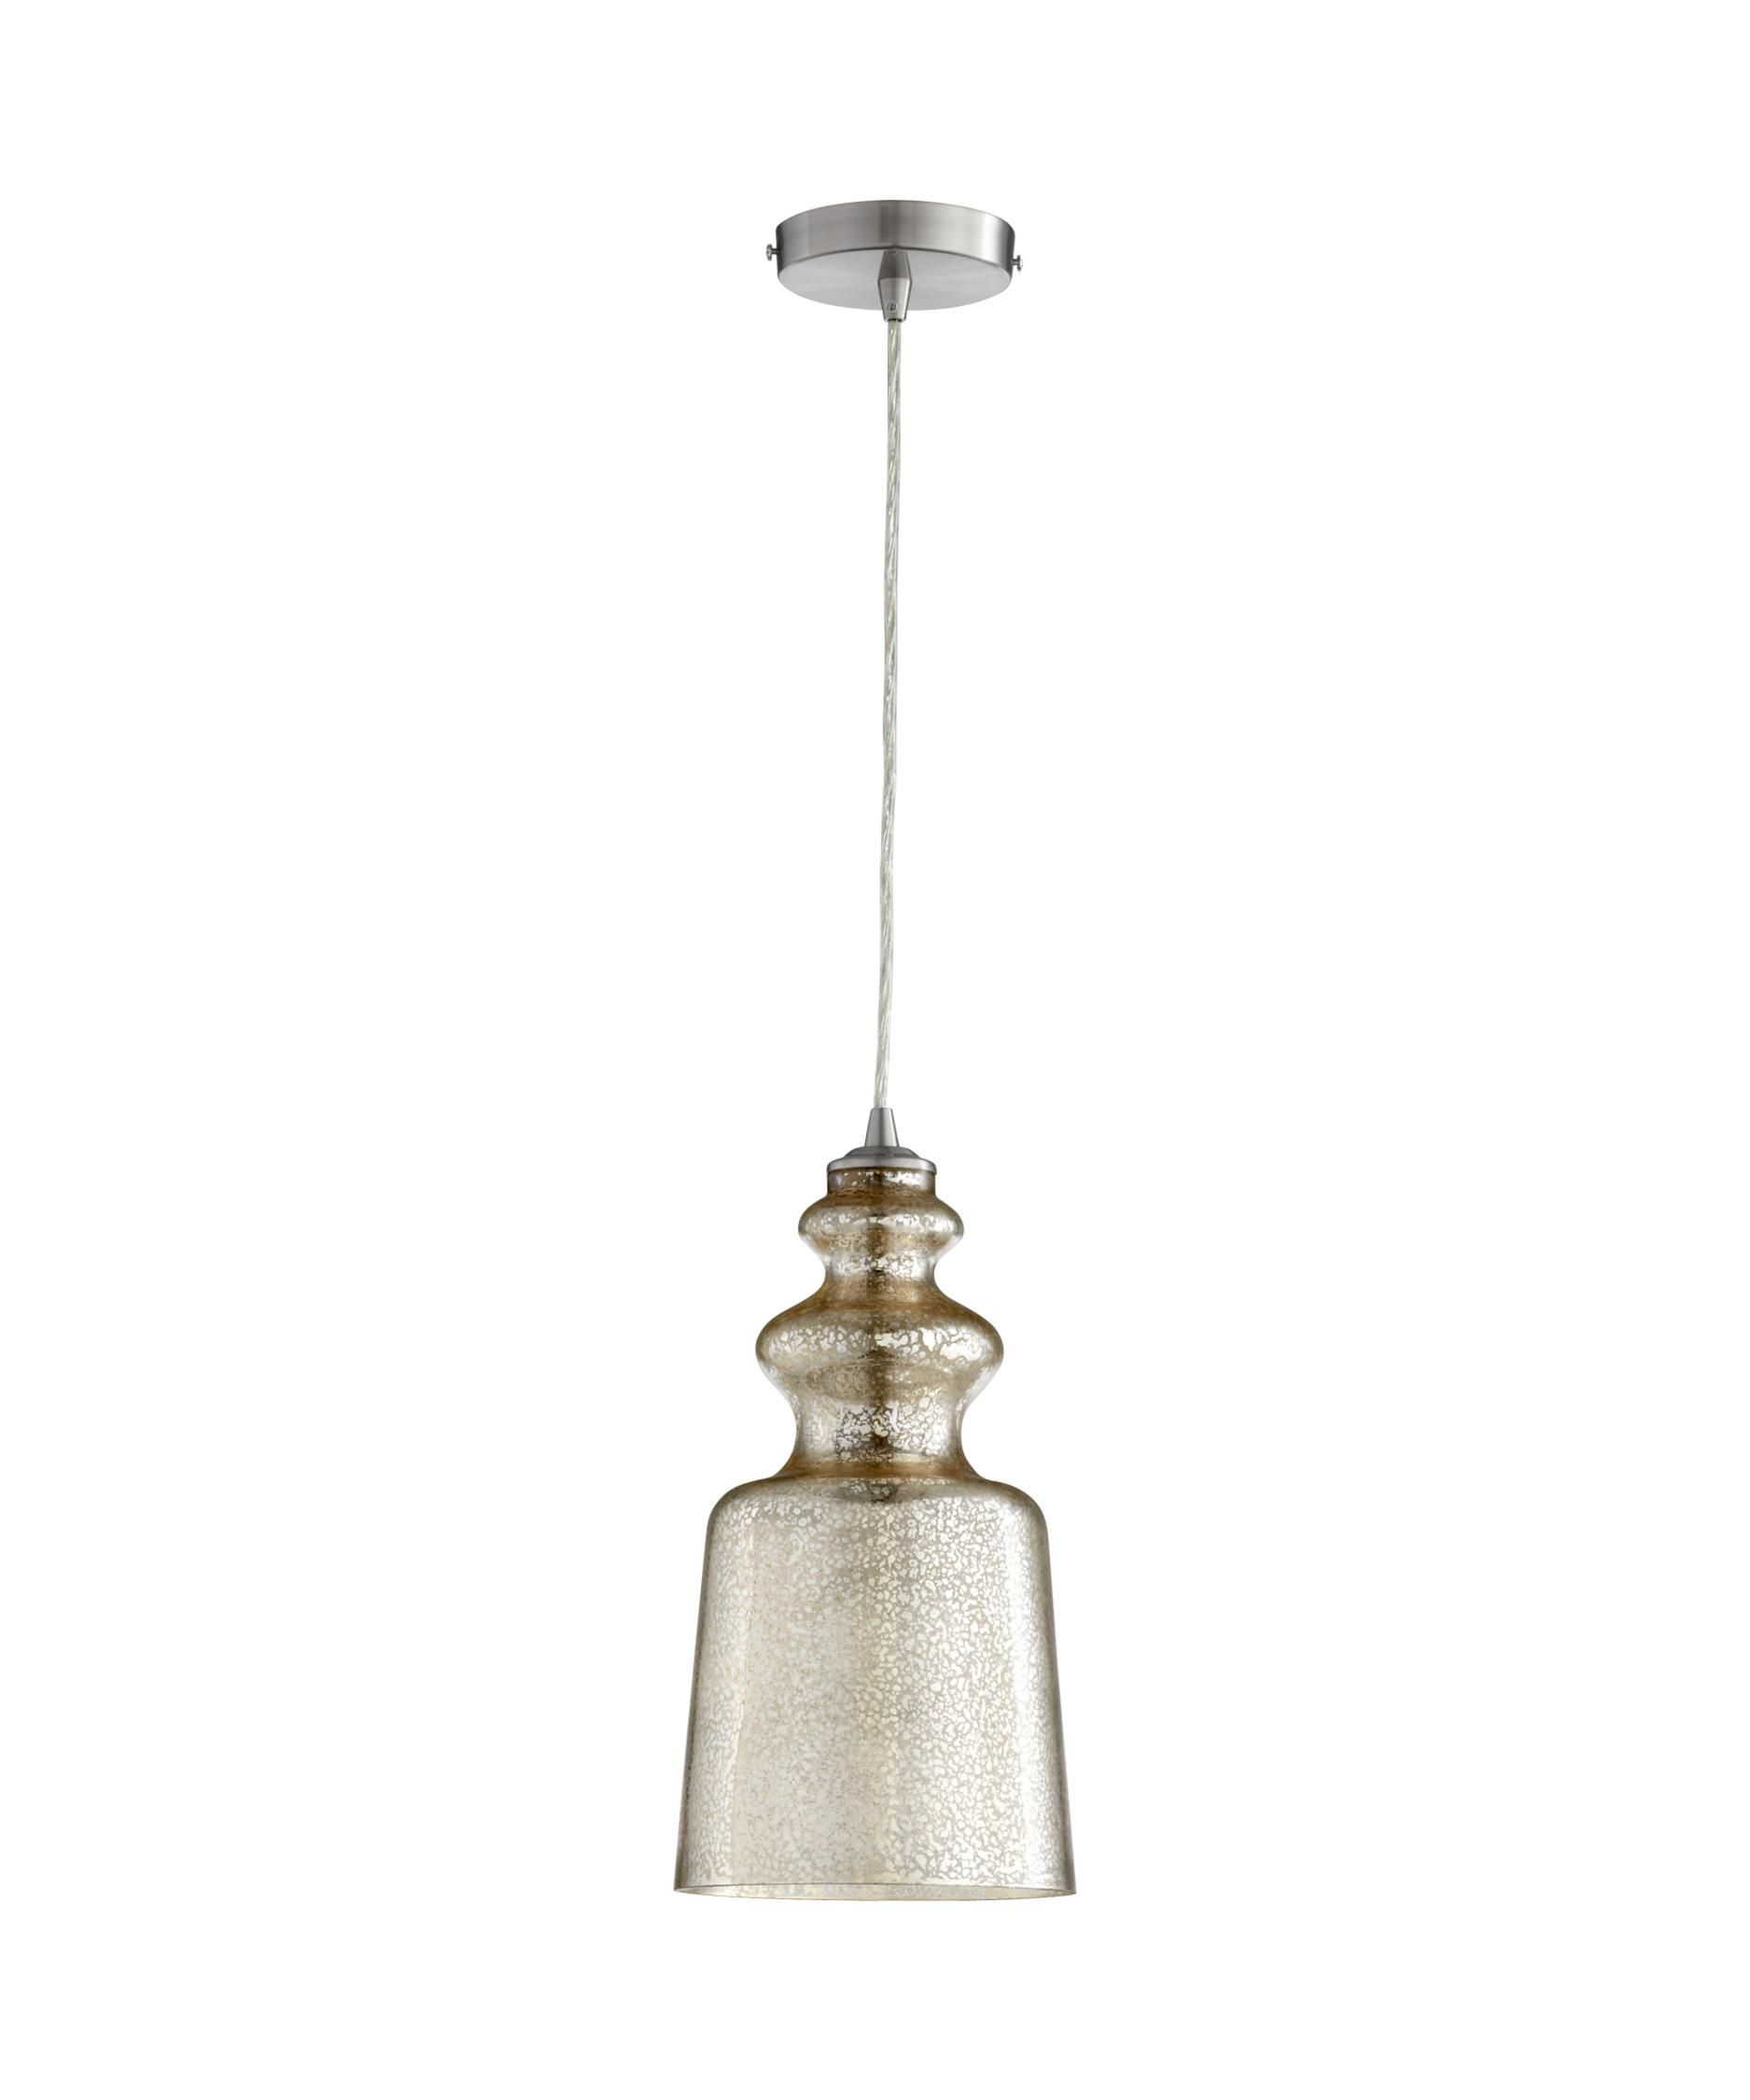 on for and top ideas lights lighting com light with at home mercury kitchen anthropologie country luxury tequestadrum glass pendant